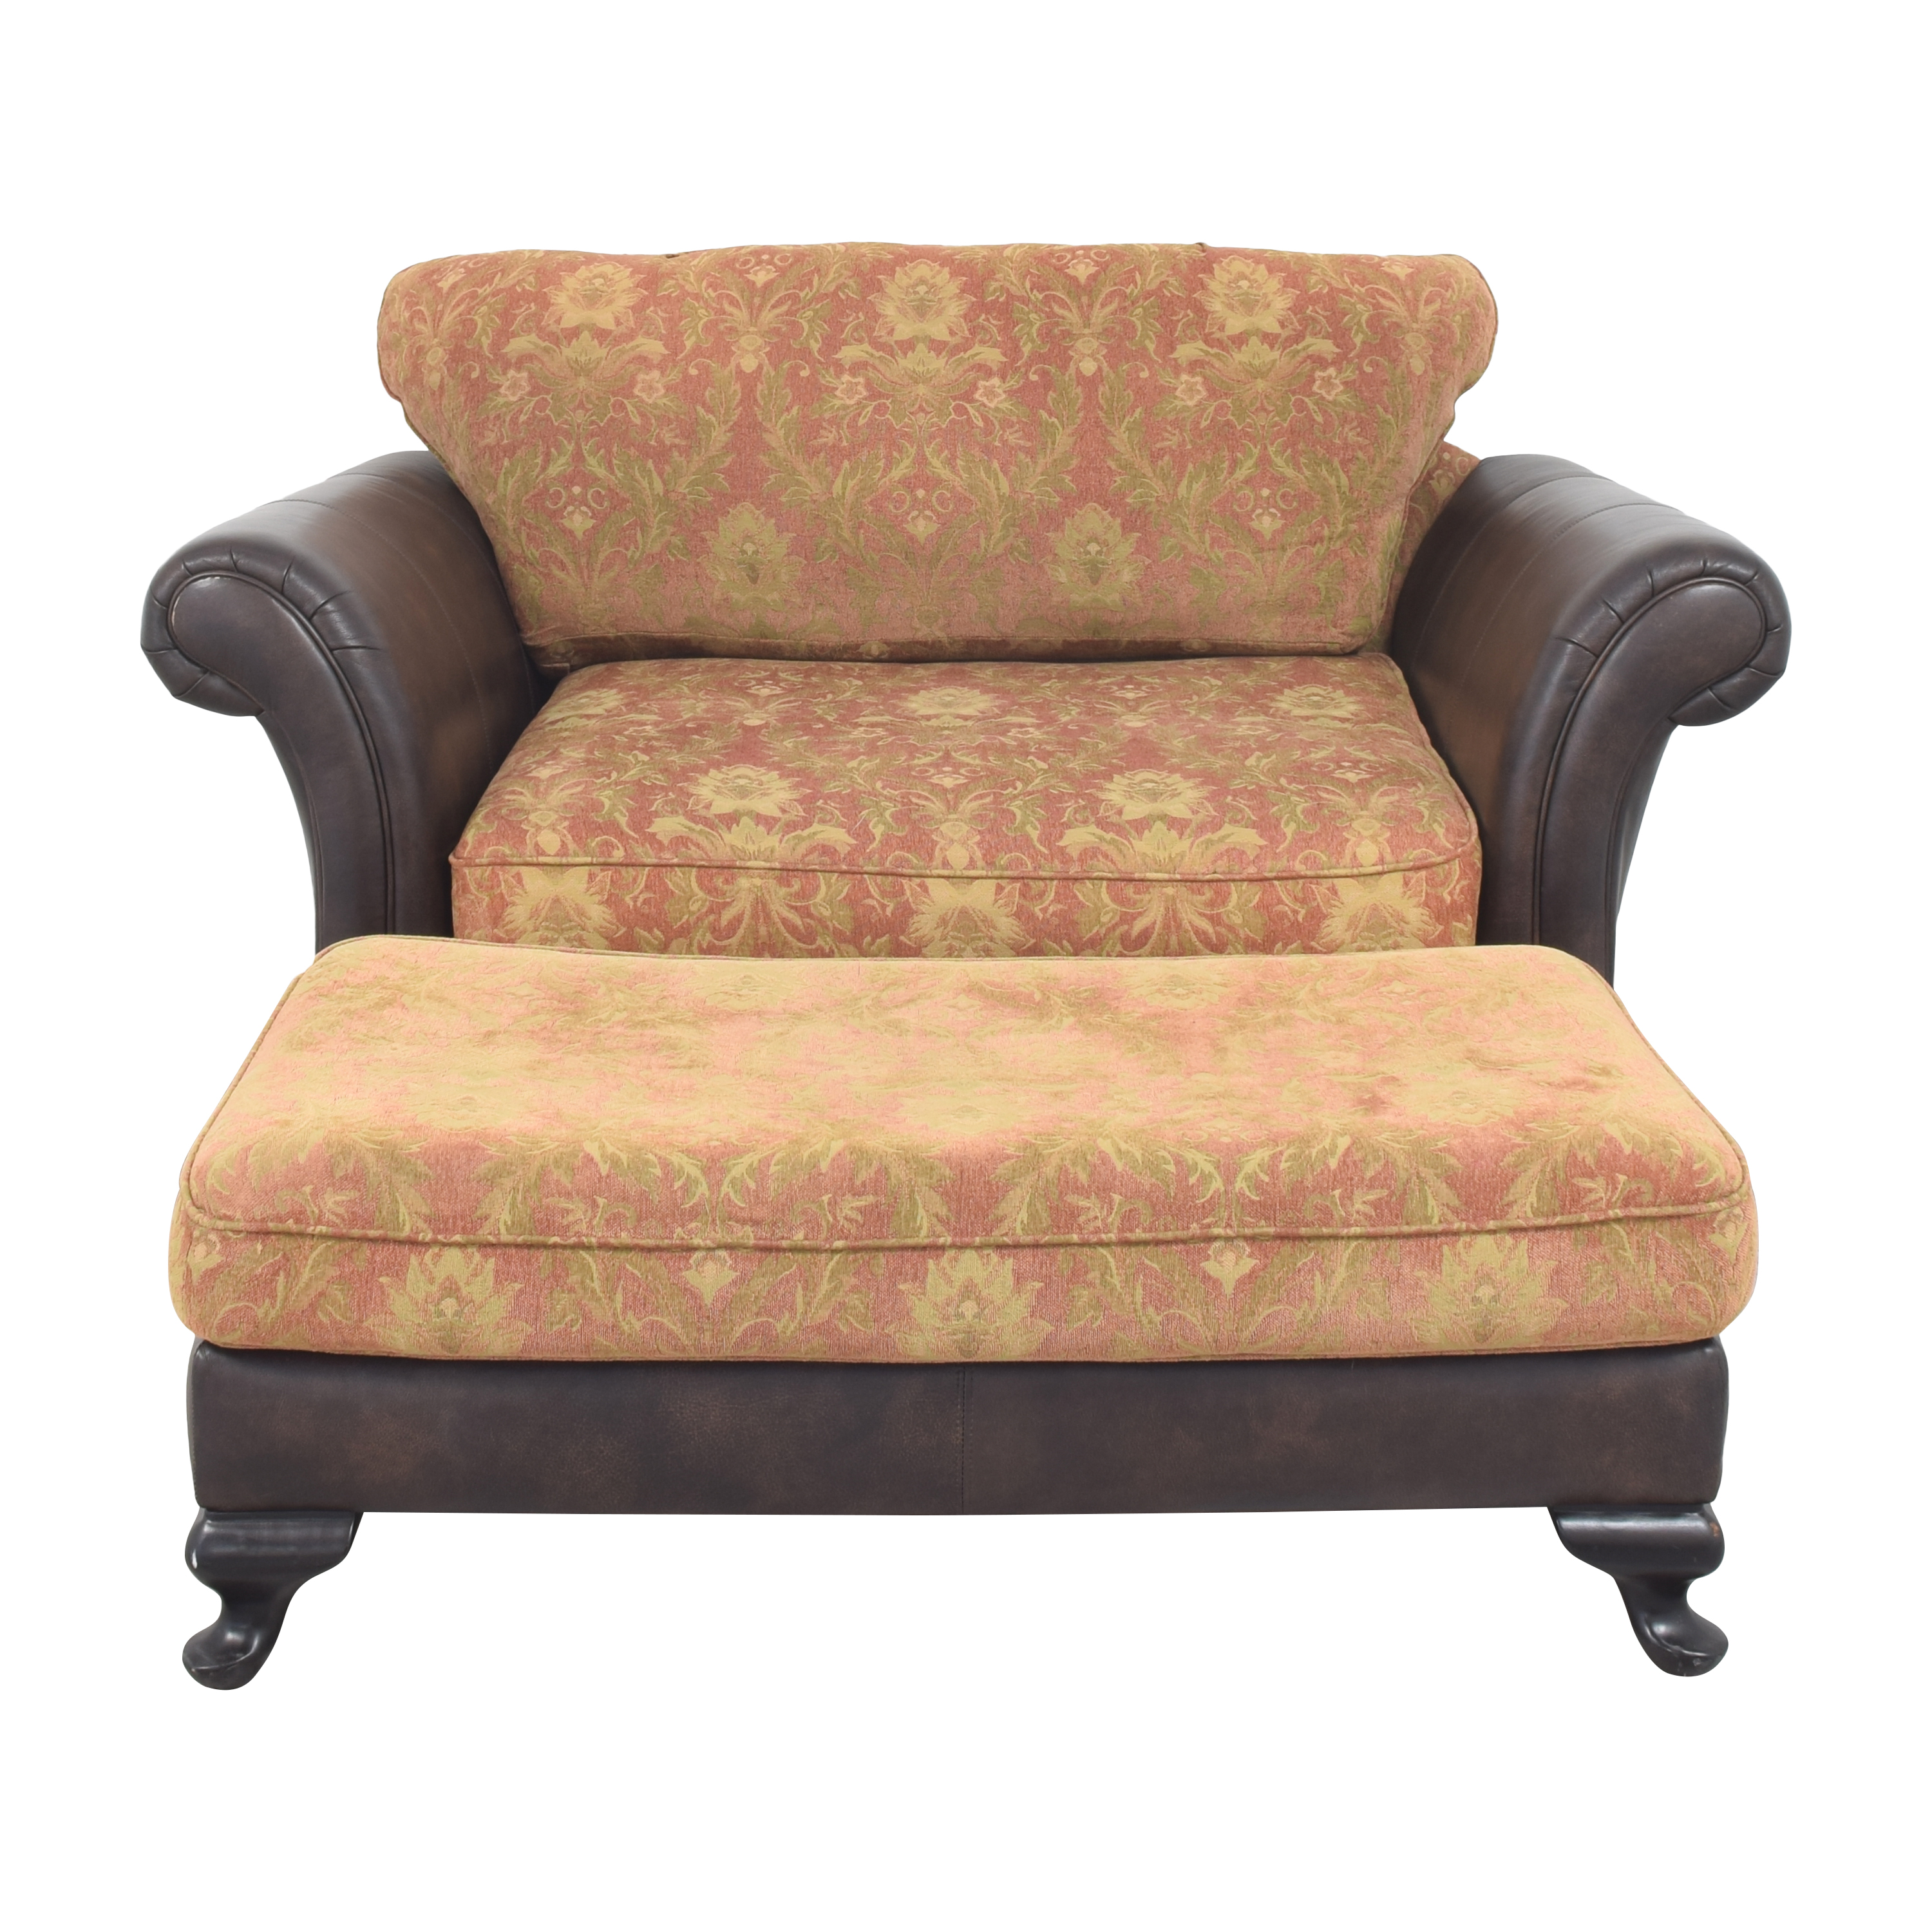 Bernhardt Bernhardt Henri Chair and a Half with Ottoman on sale